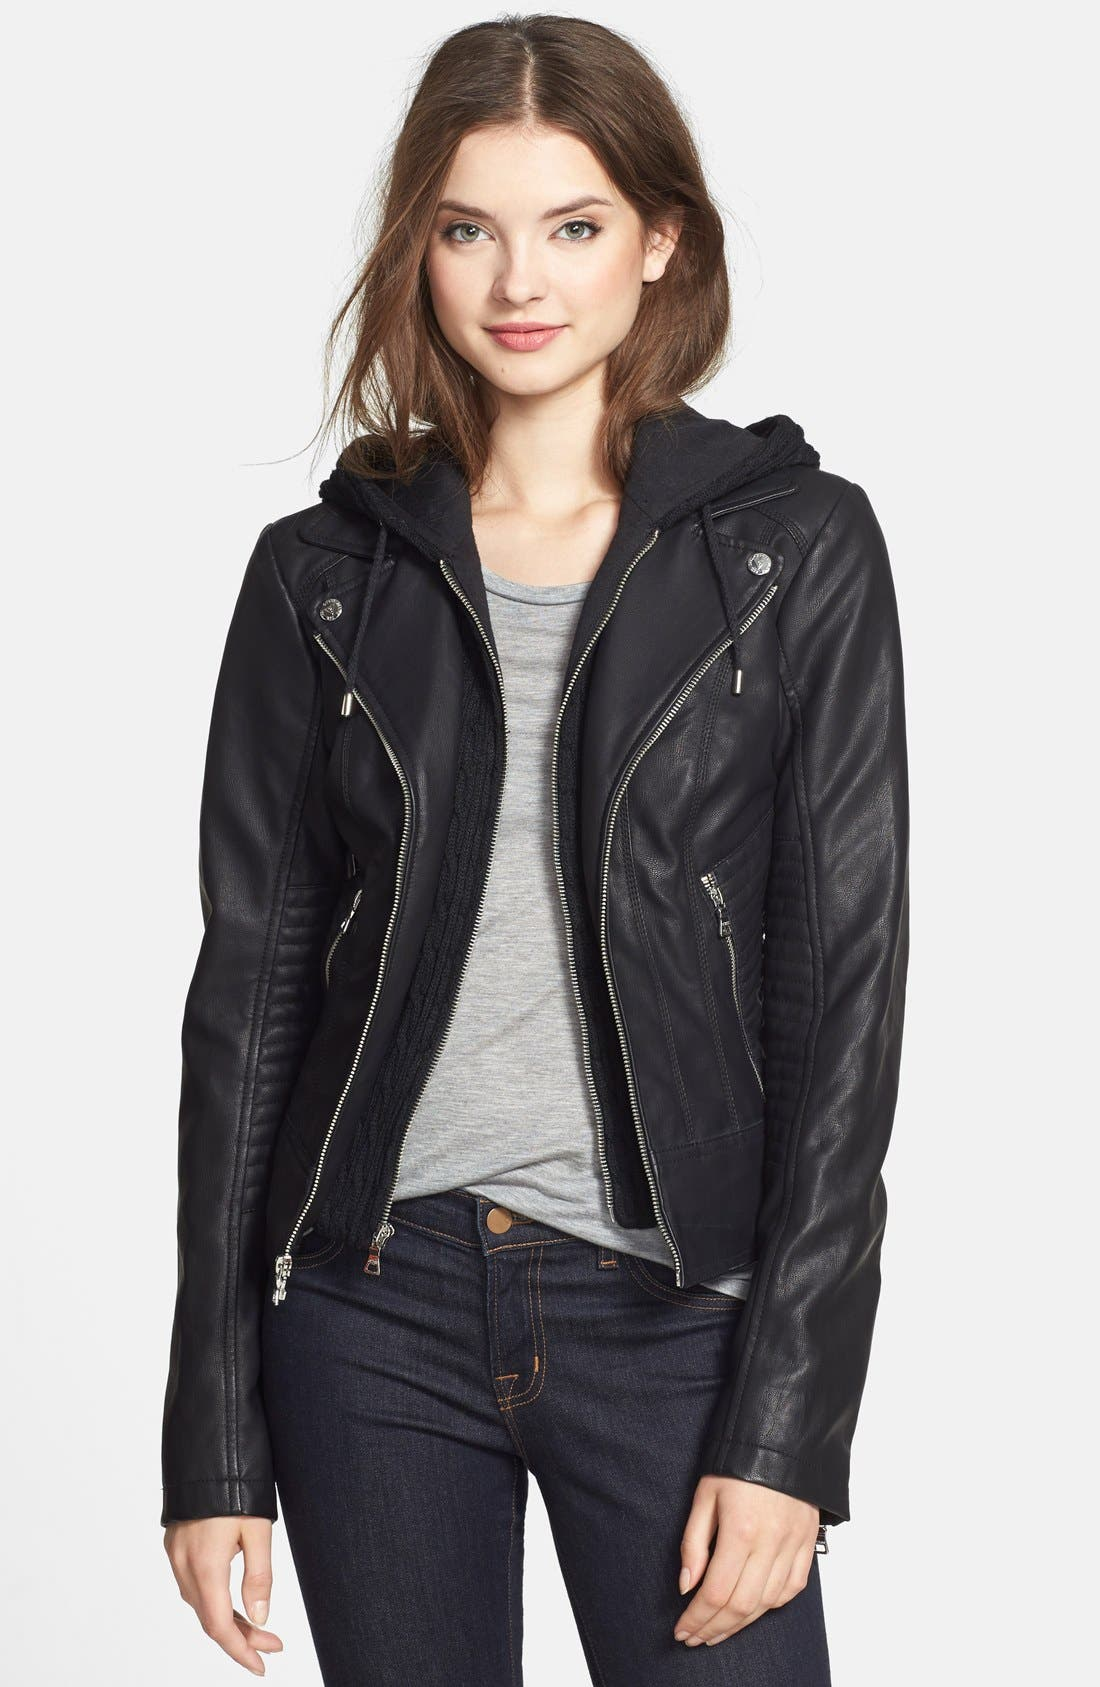 Main Image - GUESS Faux Leather Moto Jacket with Cable Knit Hooded Bib Inset (Online Only)